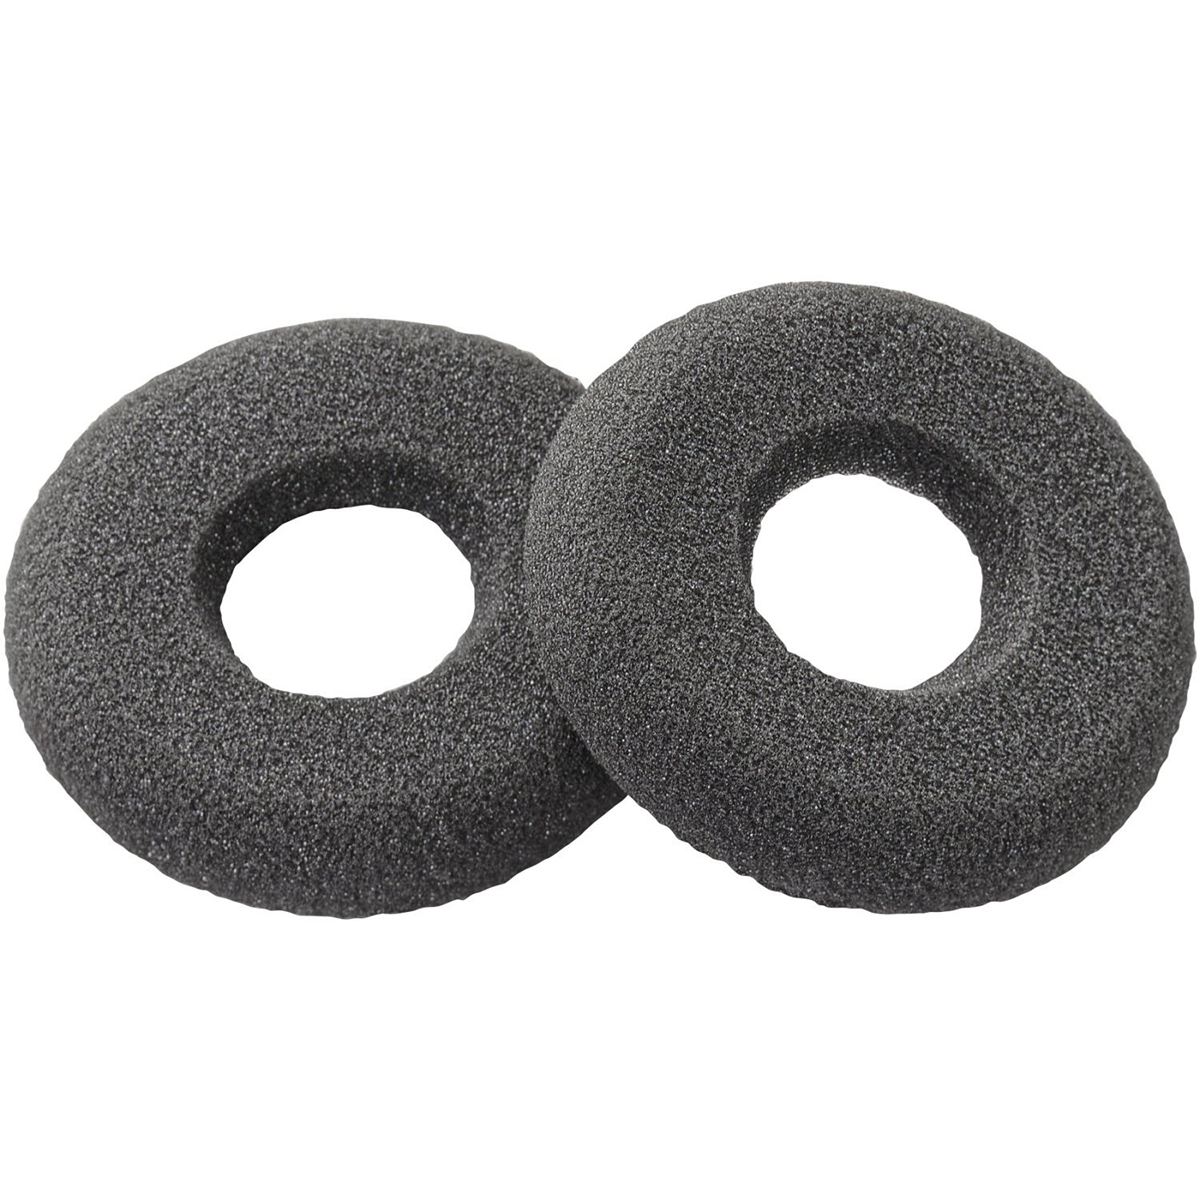 Plantronics 40709-02 Spare Donut Ear Cushion Pack of 2